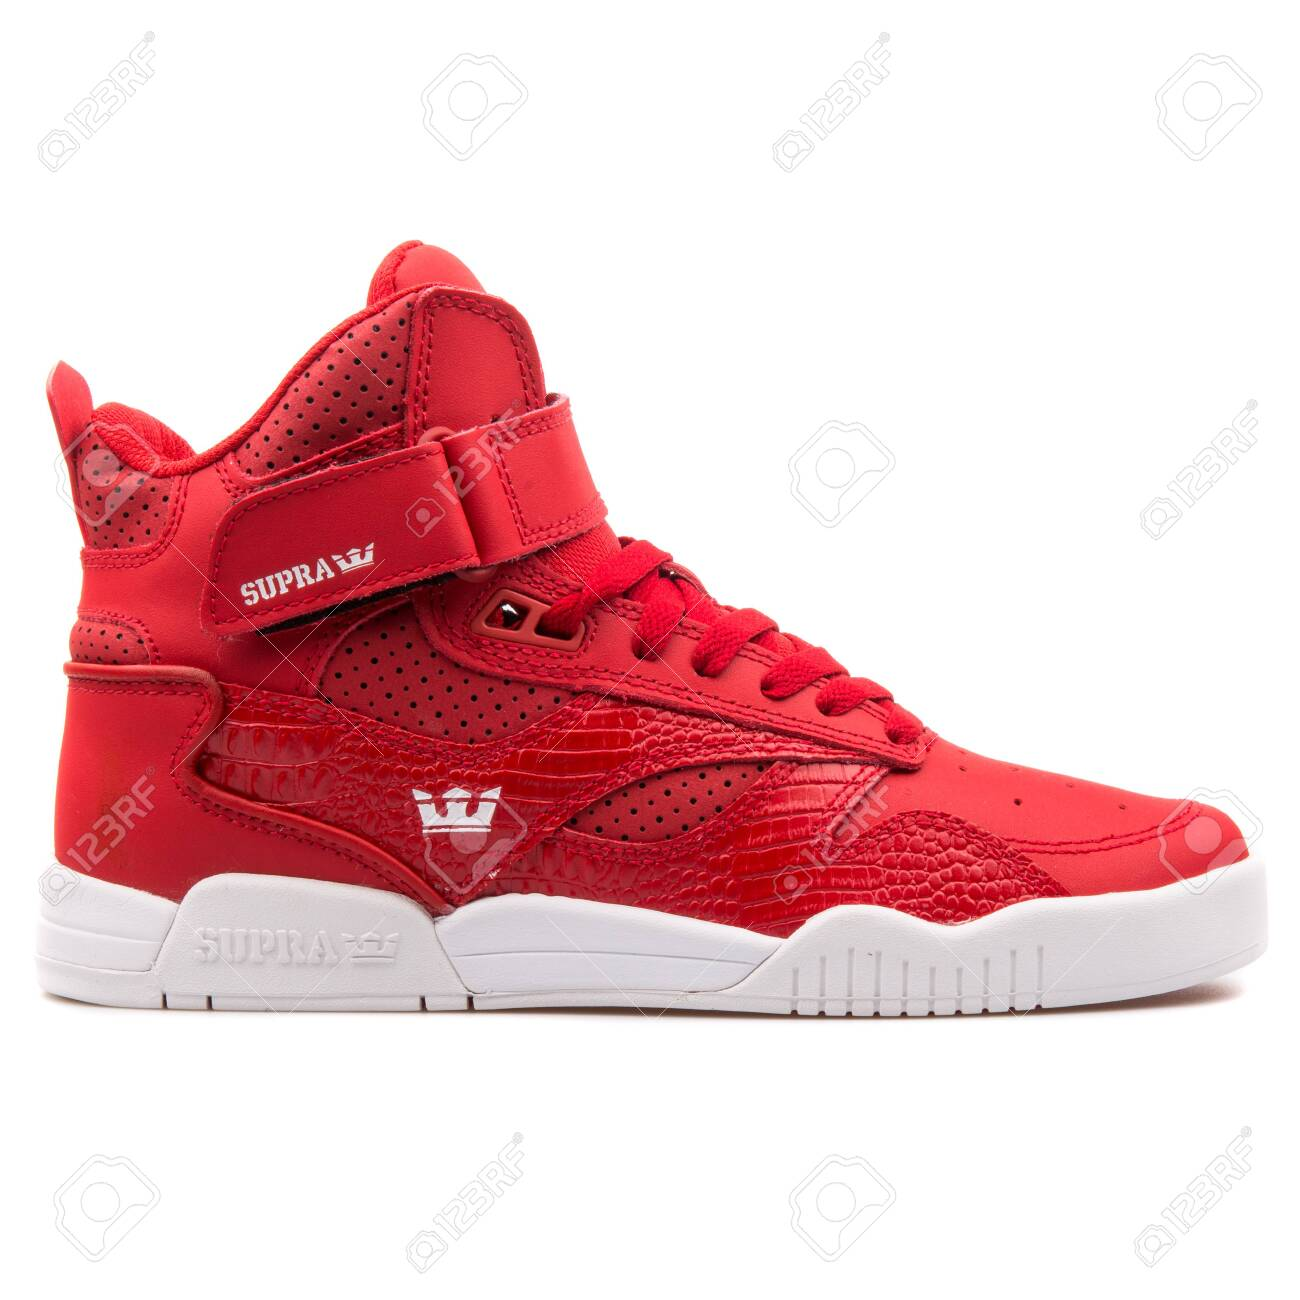 Supra Bleeker Red And White.. Stock